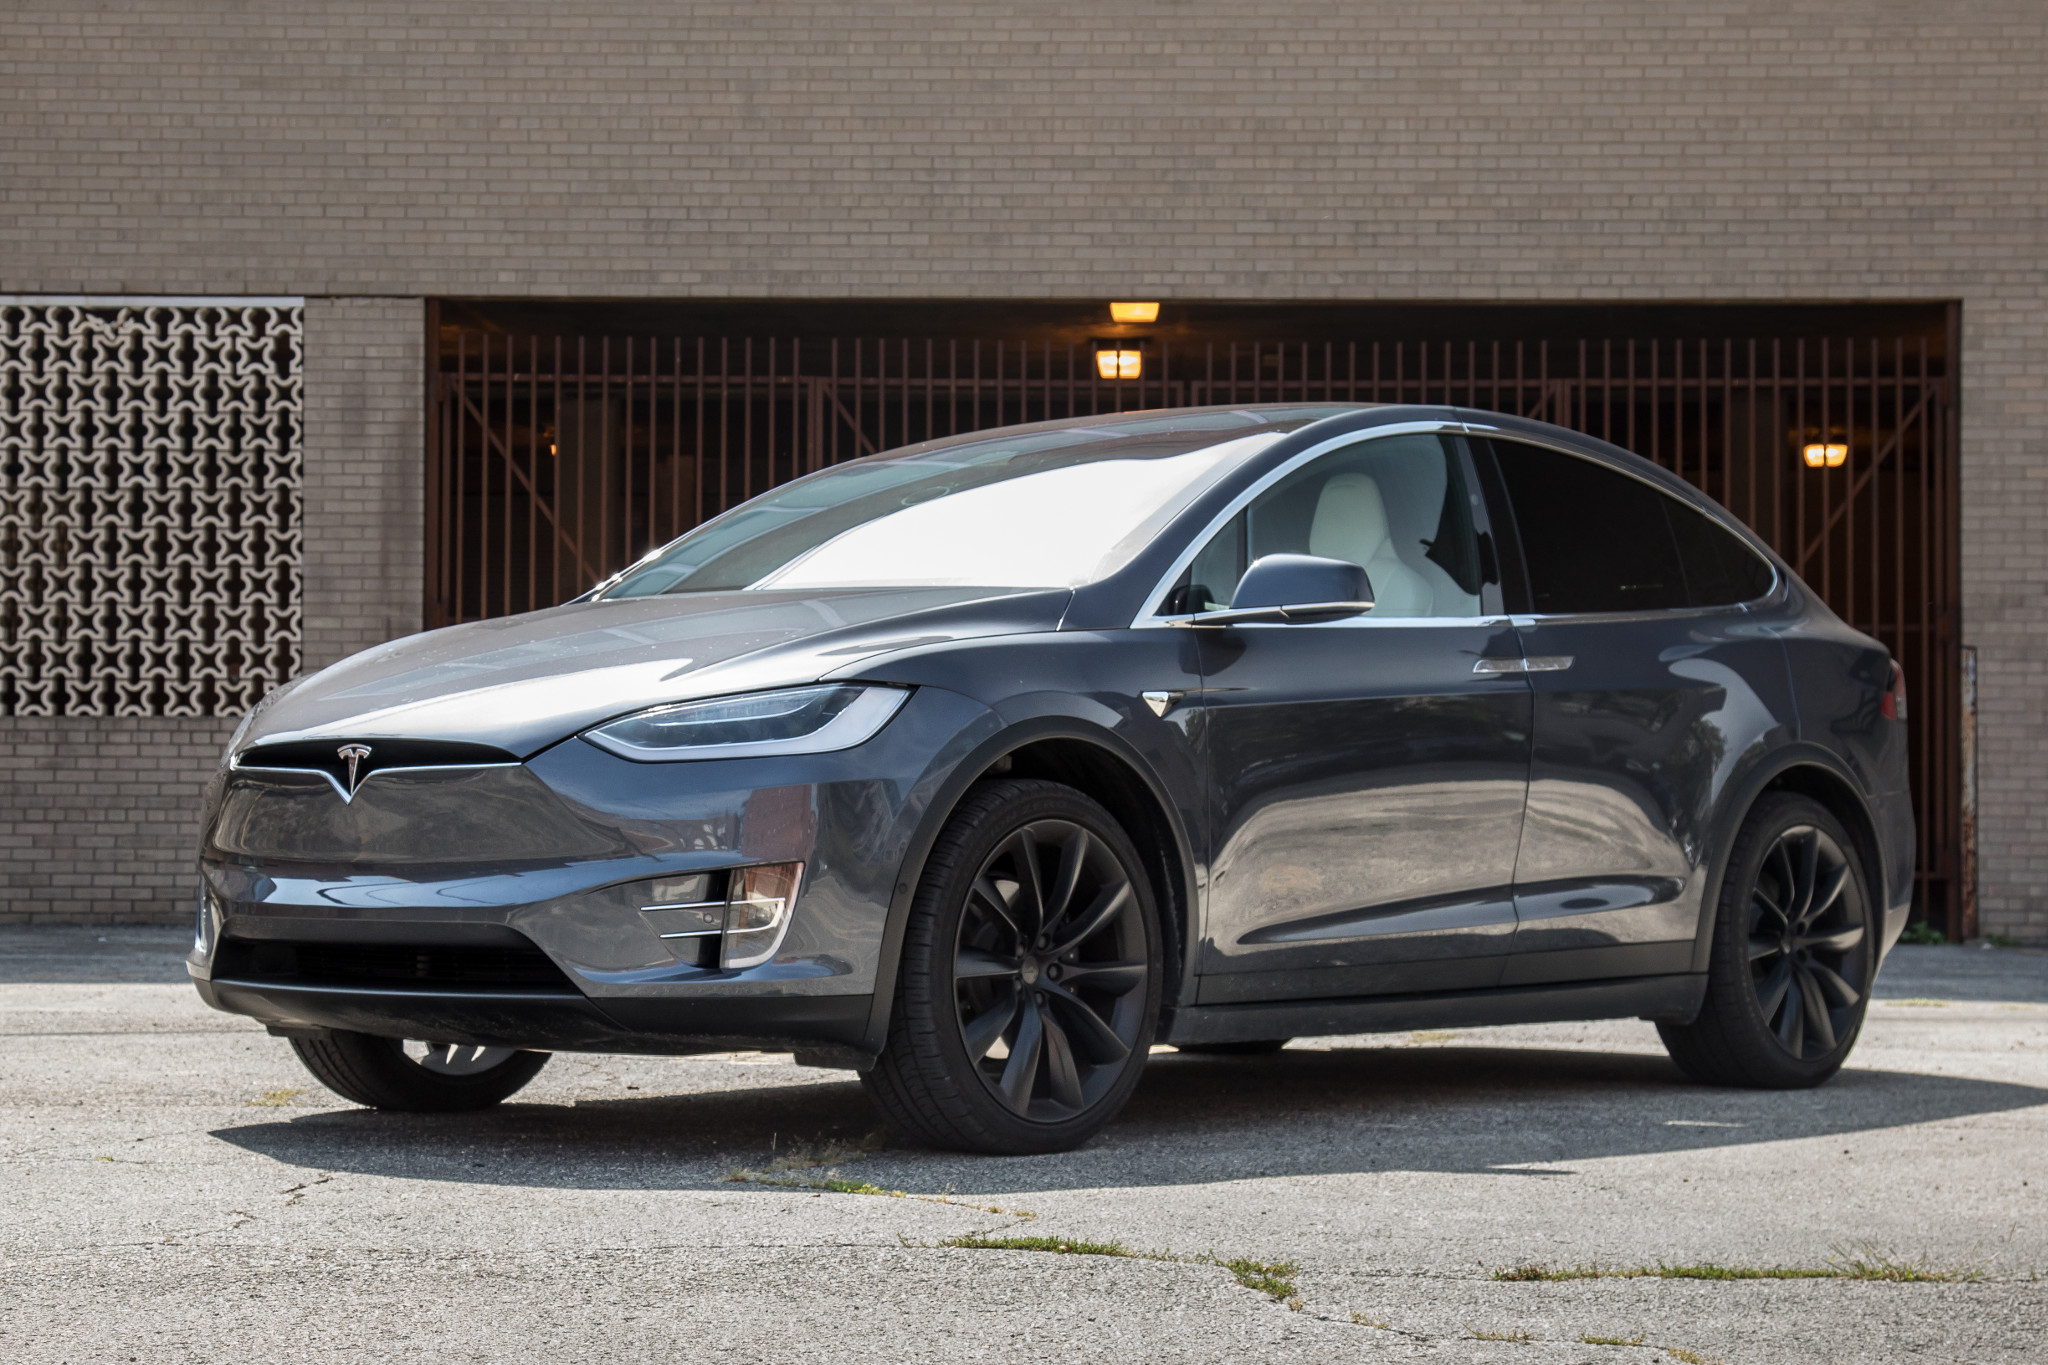 The Week in Tesla News: Tesla Is Most Valuable Automaker Ever, Elon Danced (Kinda), Delivery Downer and More via @carsdotcom